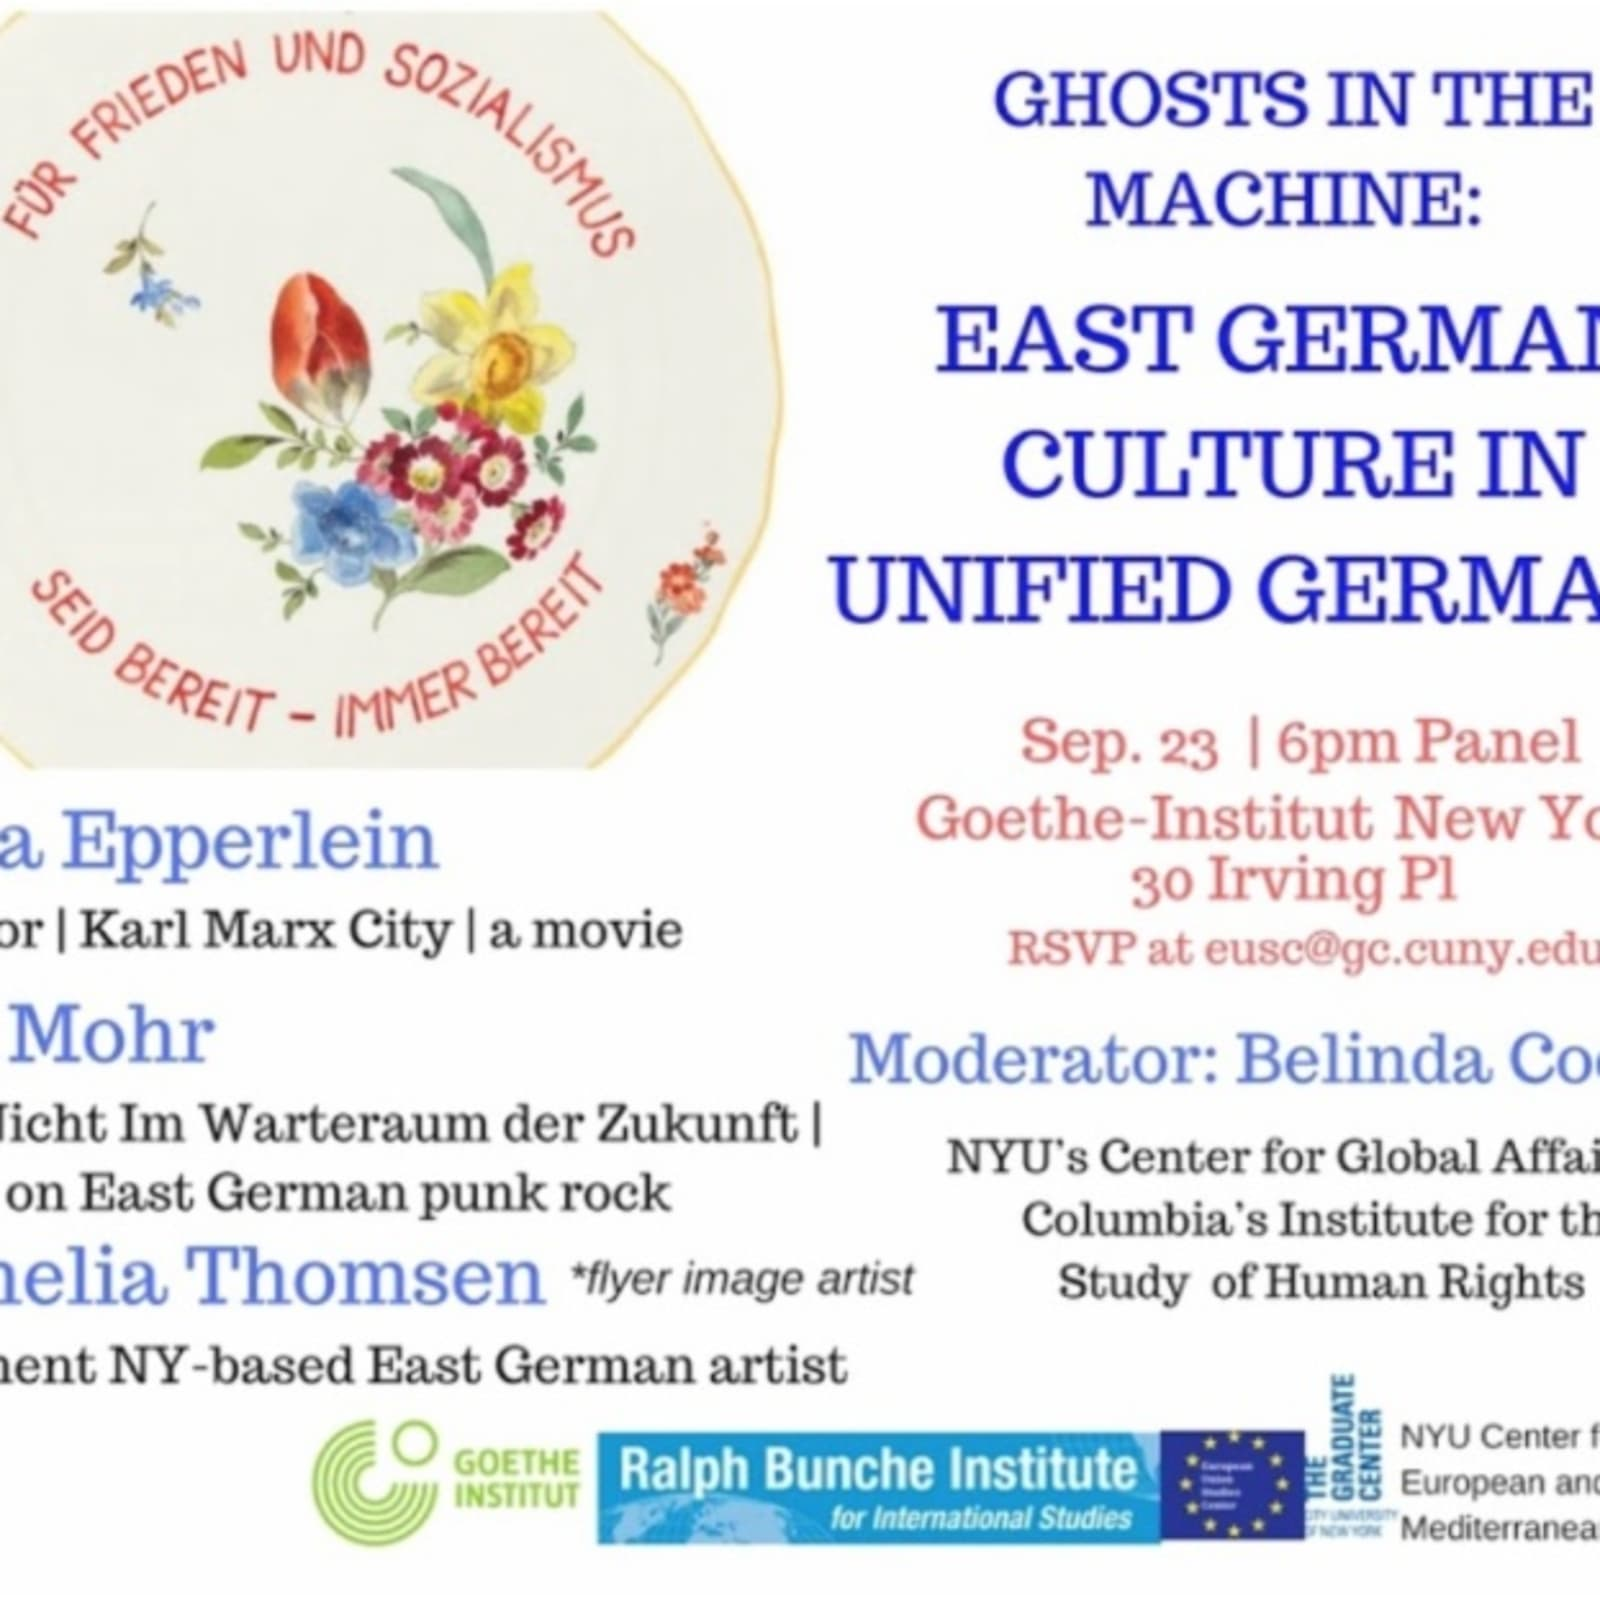 Invitation to panel discussion at the Goethe-Institut New York